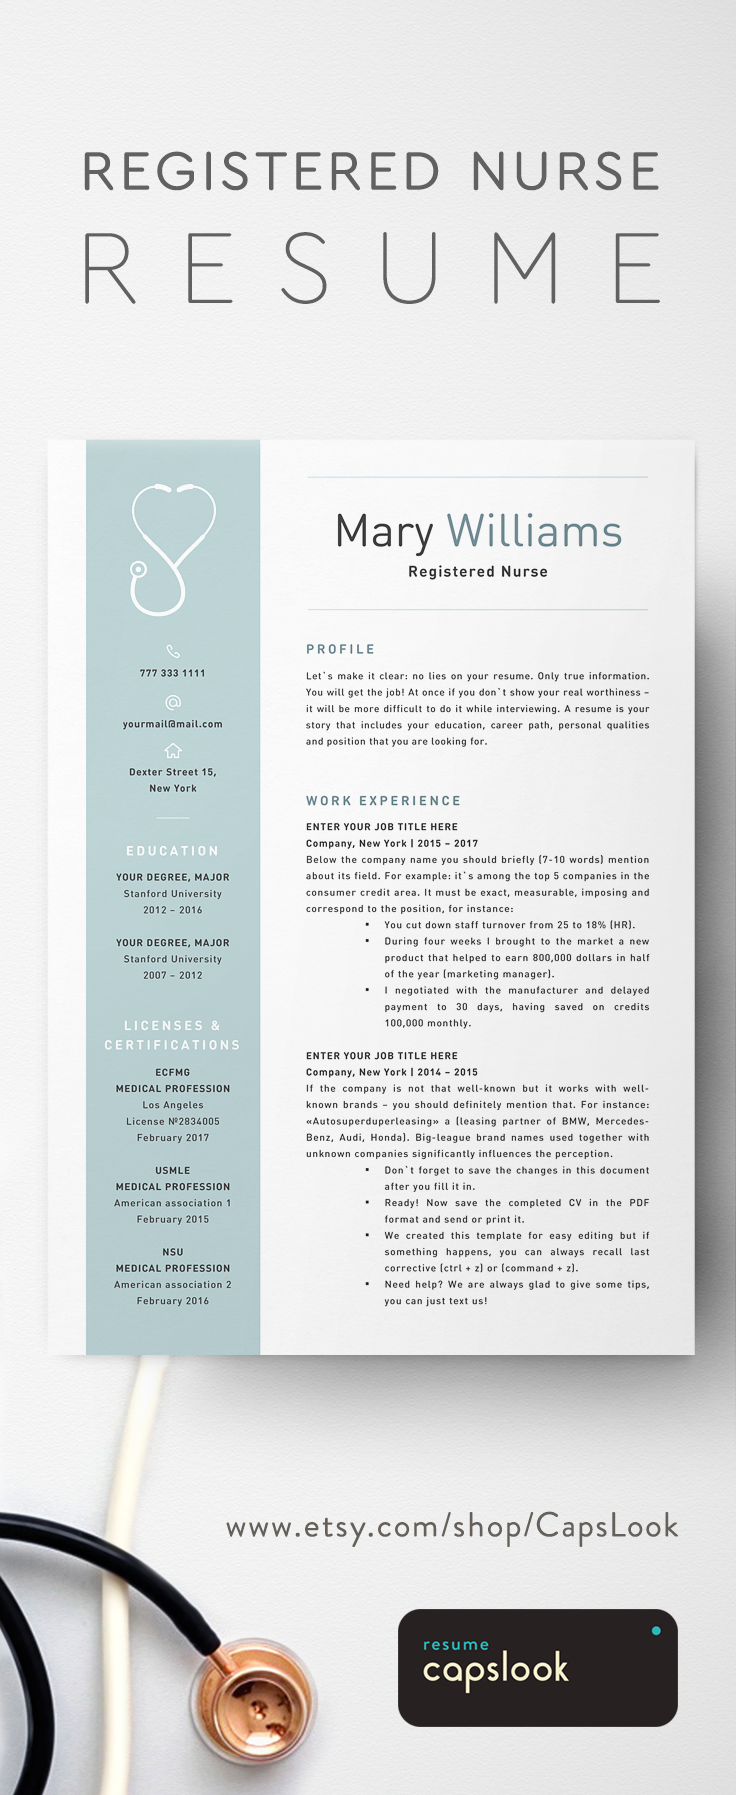 Resume For Registered Nurse Nurse Resume Template For Word  Medical Resume Word Nurse Cv .